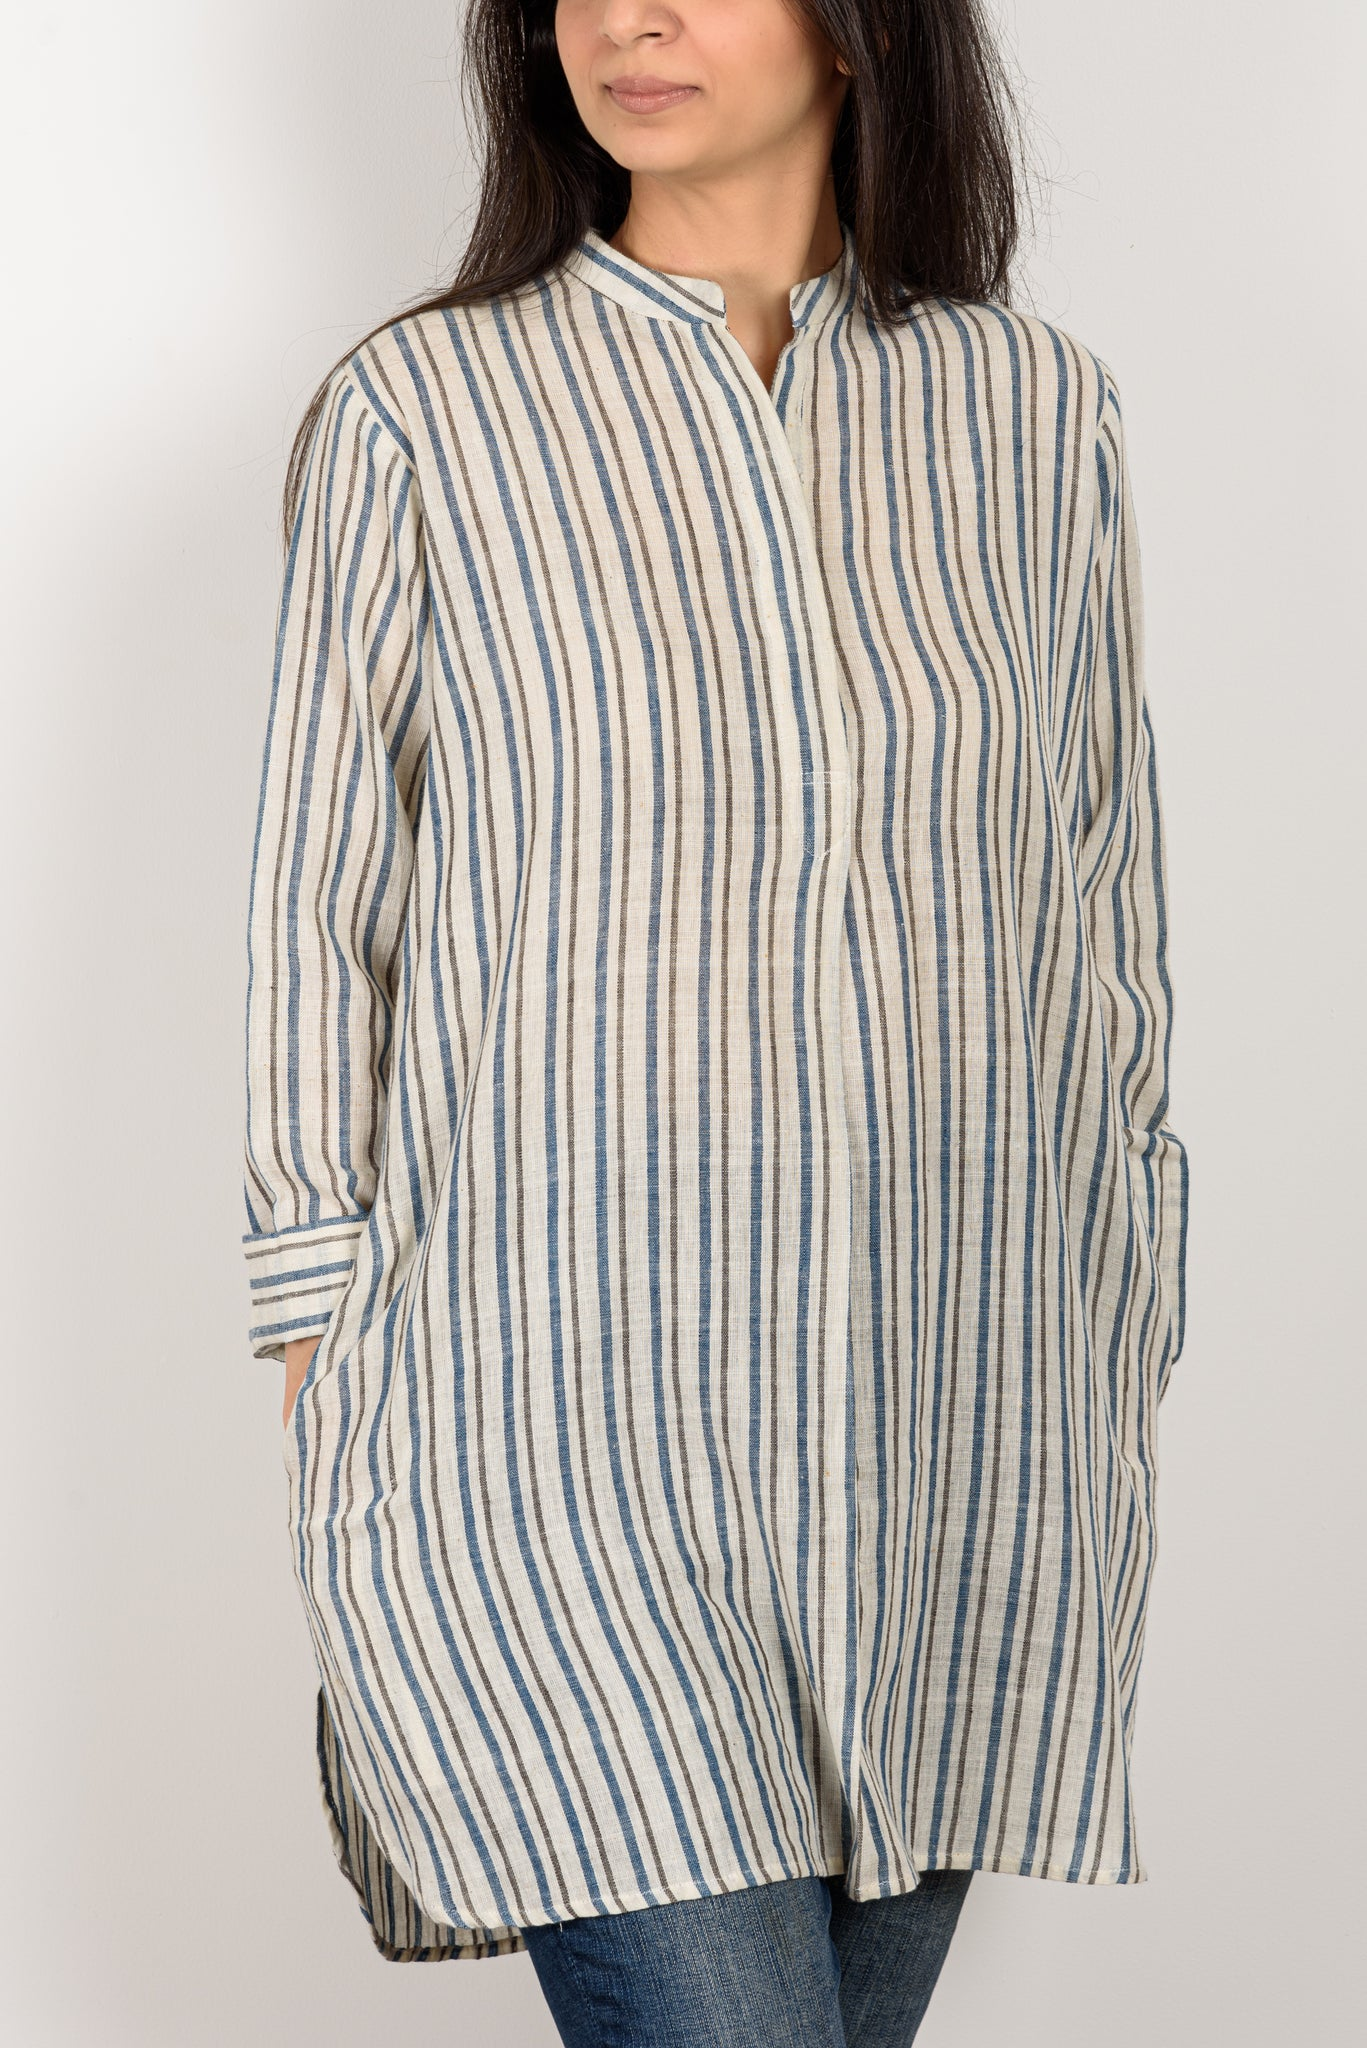 Blue Grey Striped Top